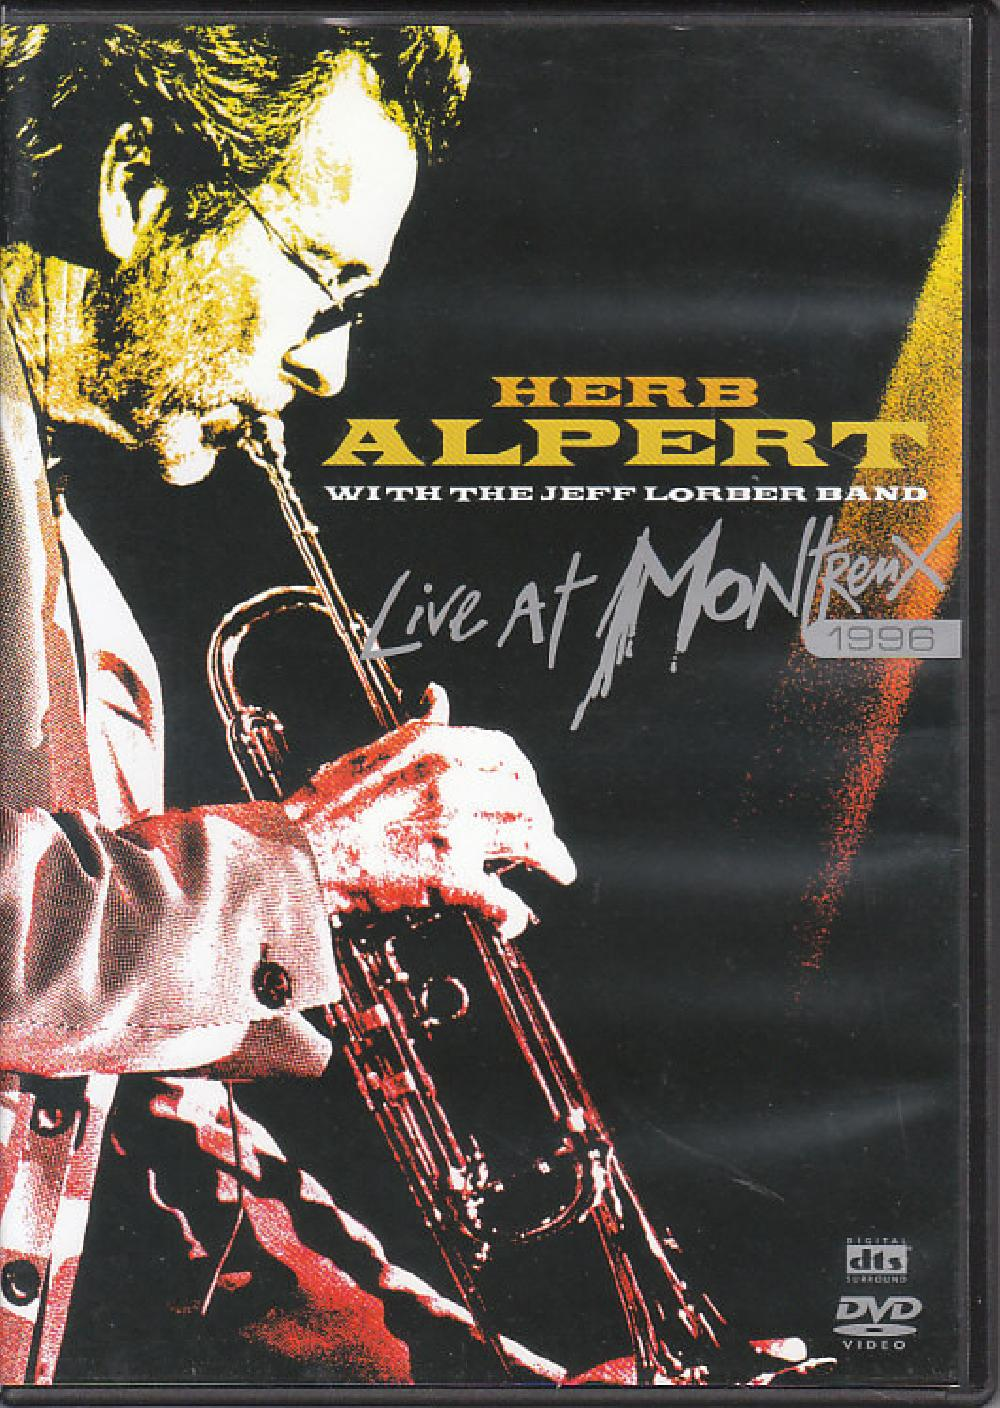 HERB ALPERT - Live At Montreux 1996 - DVD